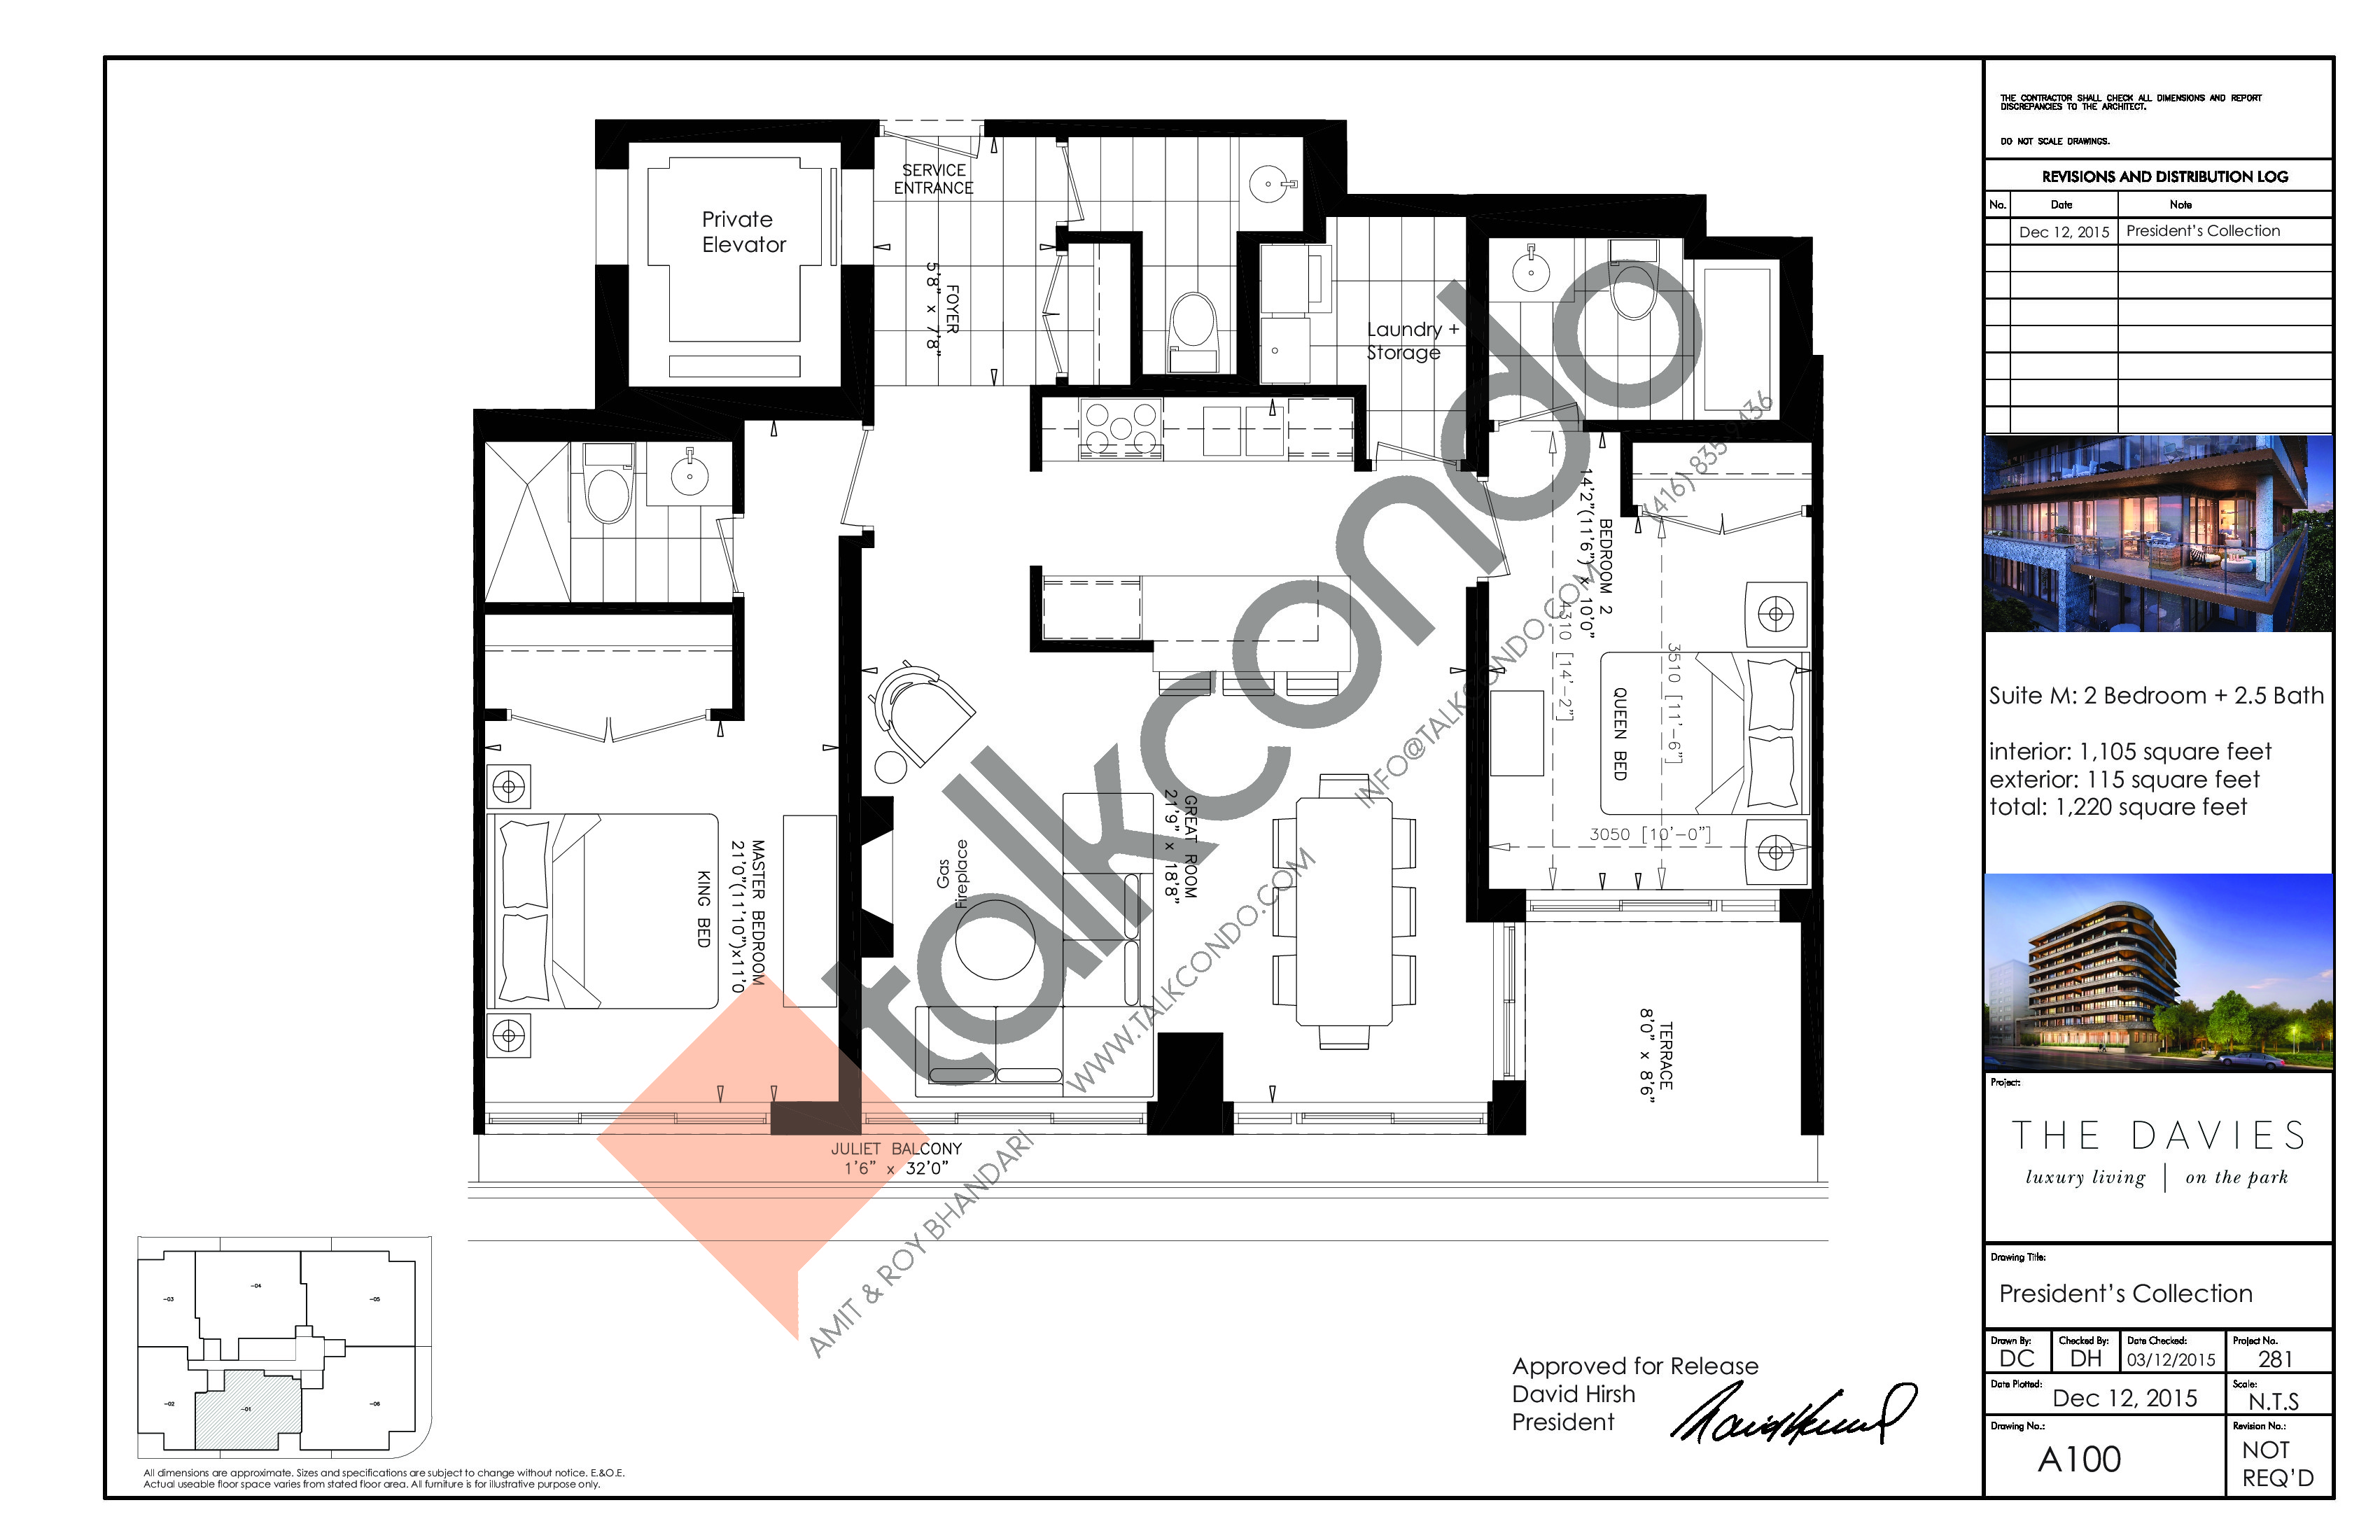 Suite M Floor Plan at The Davies - 1105 sq.ft